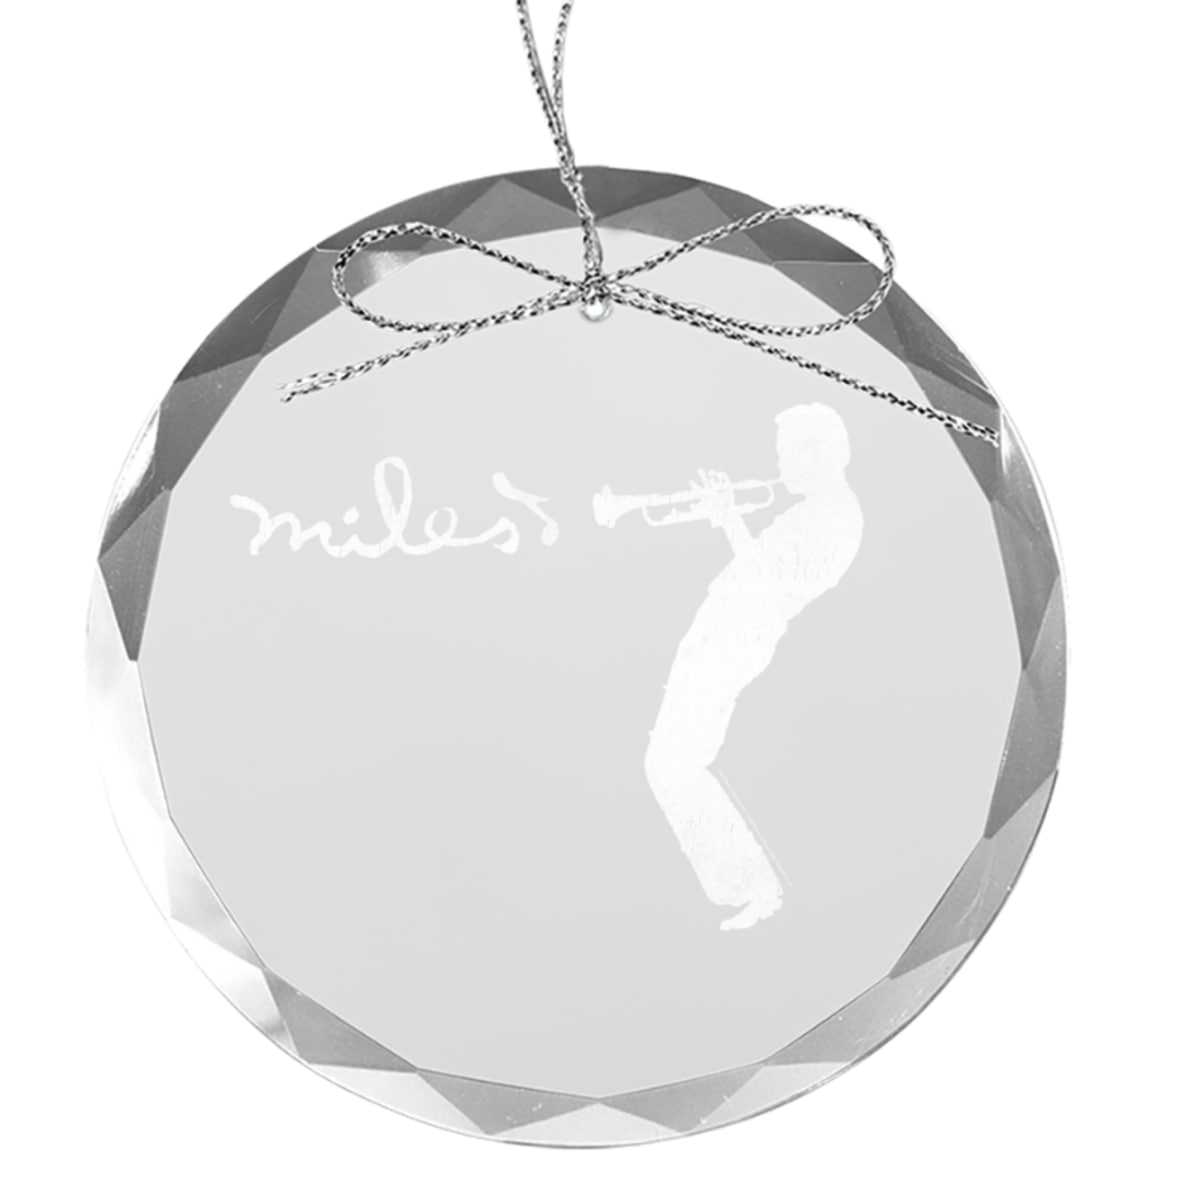 Silhouette Round Laser-Etched Glass Ornament